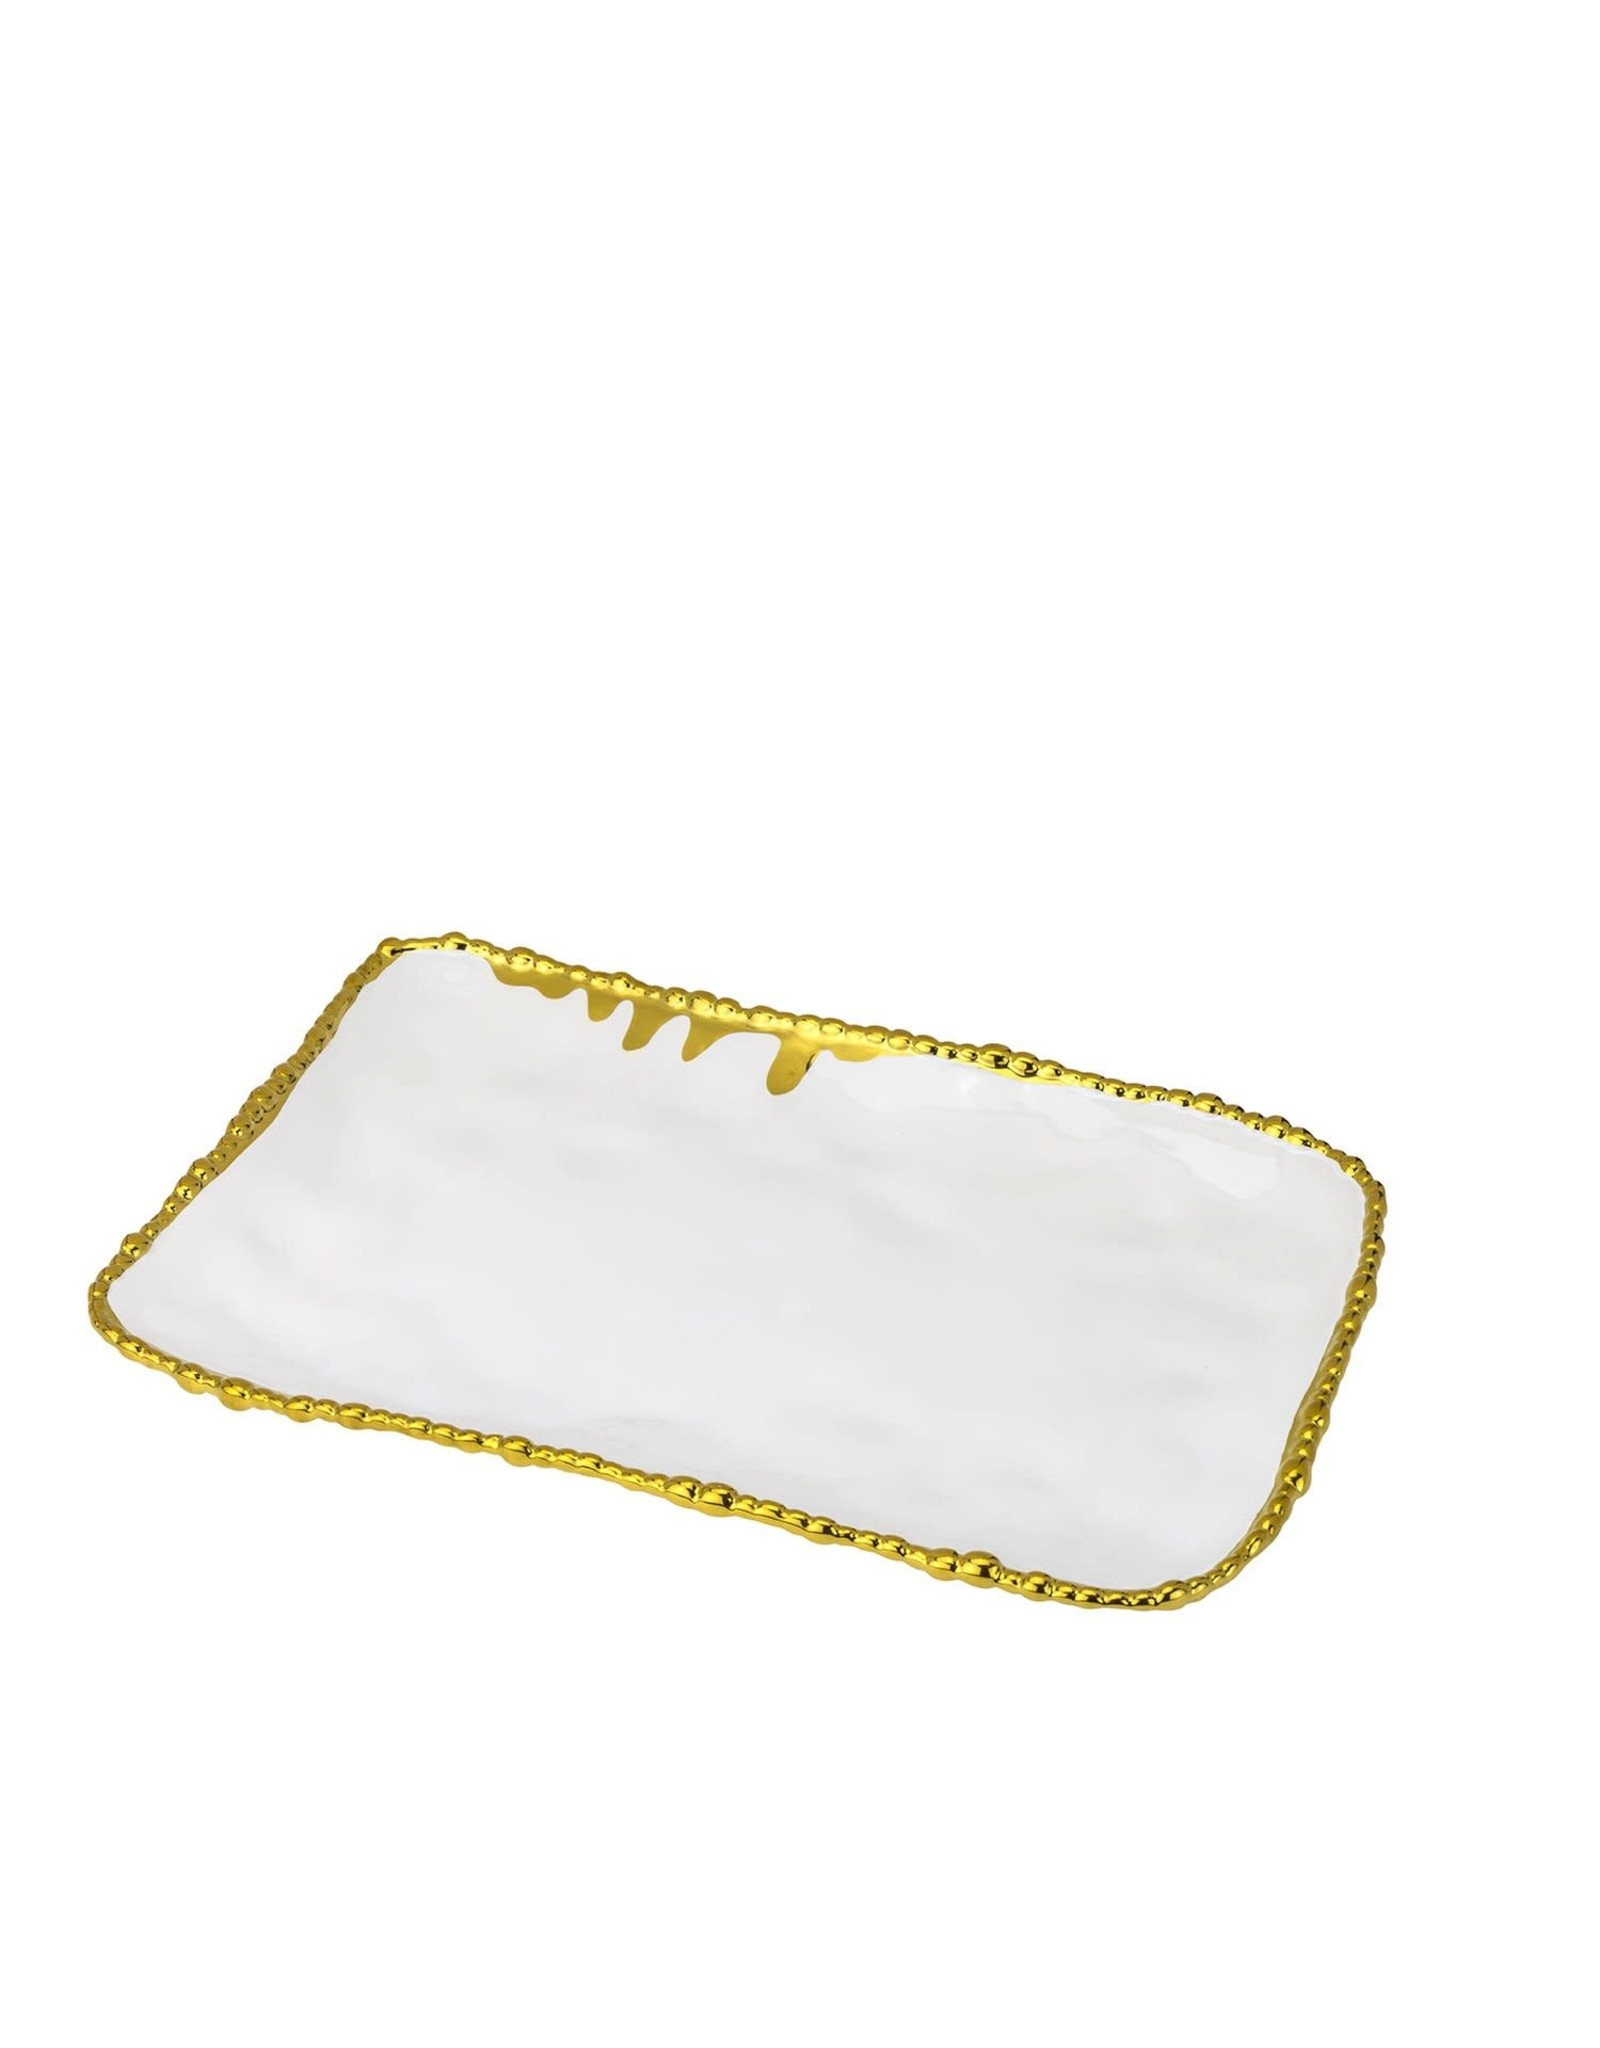 280G White/Gold Serving Tray